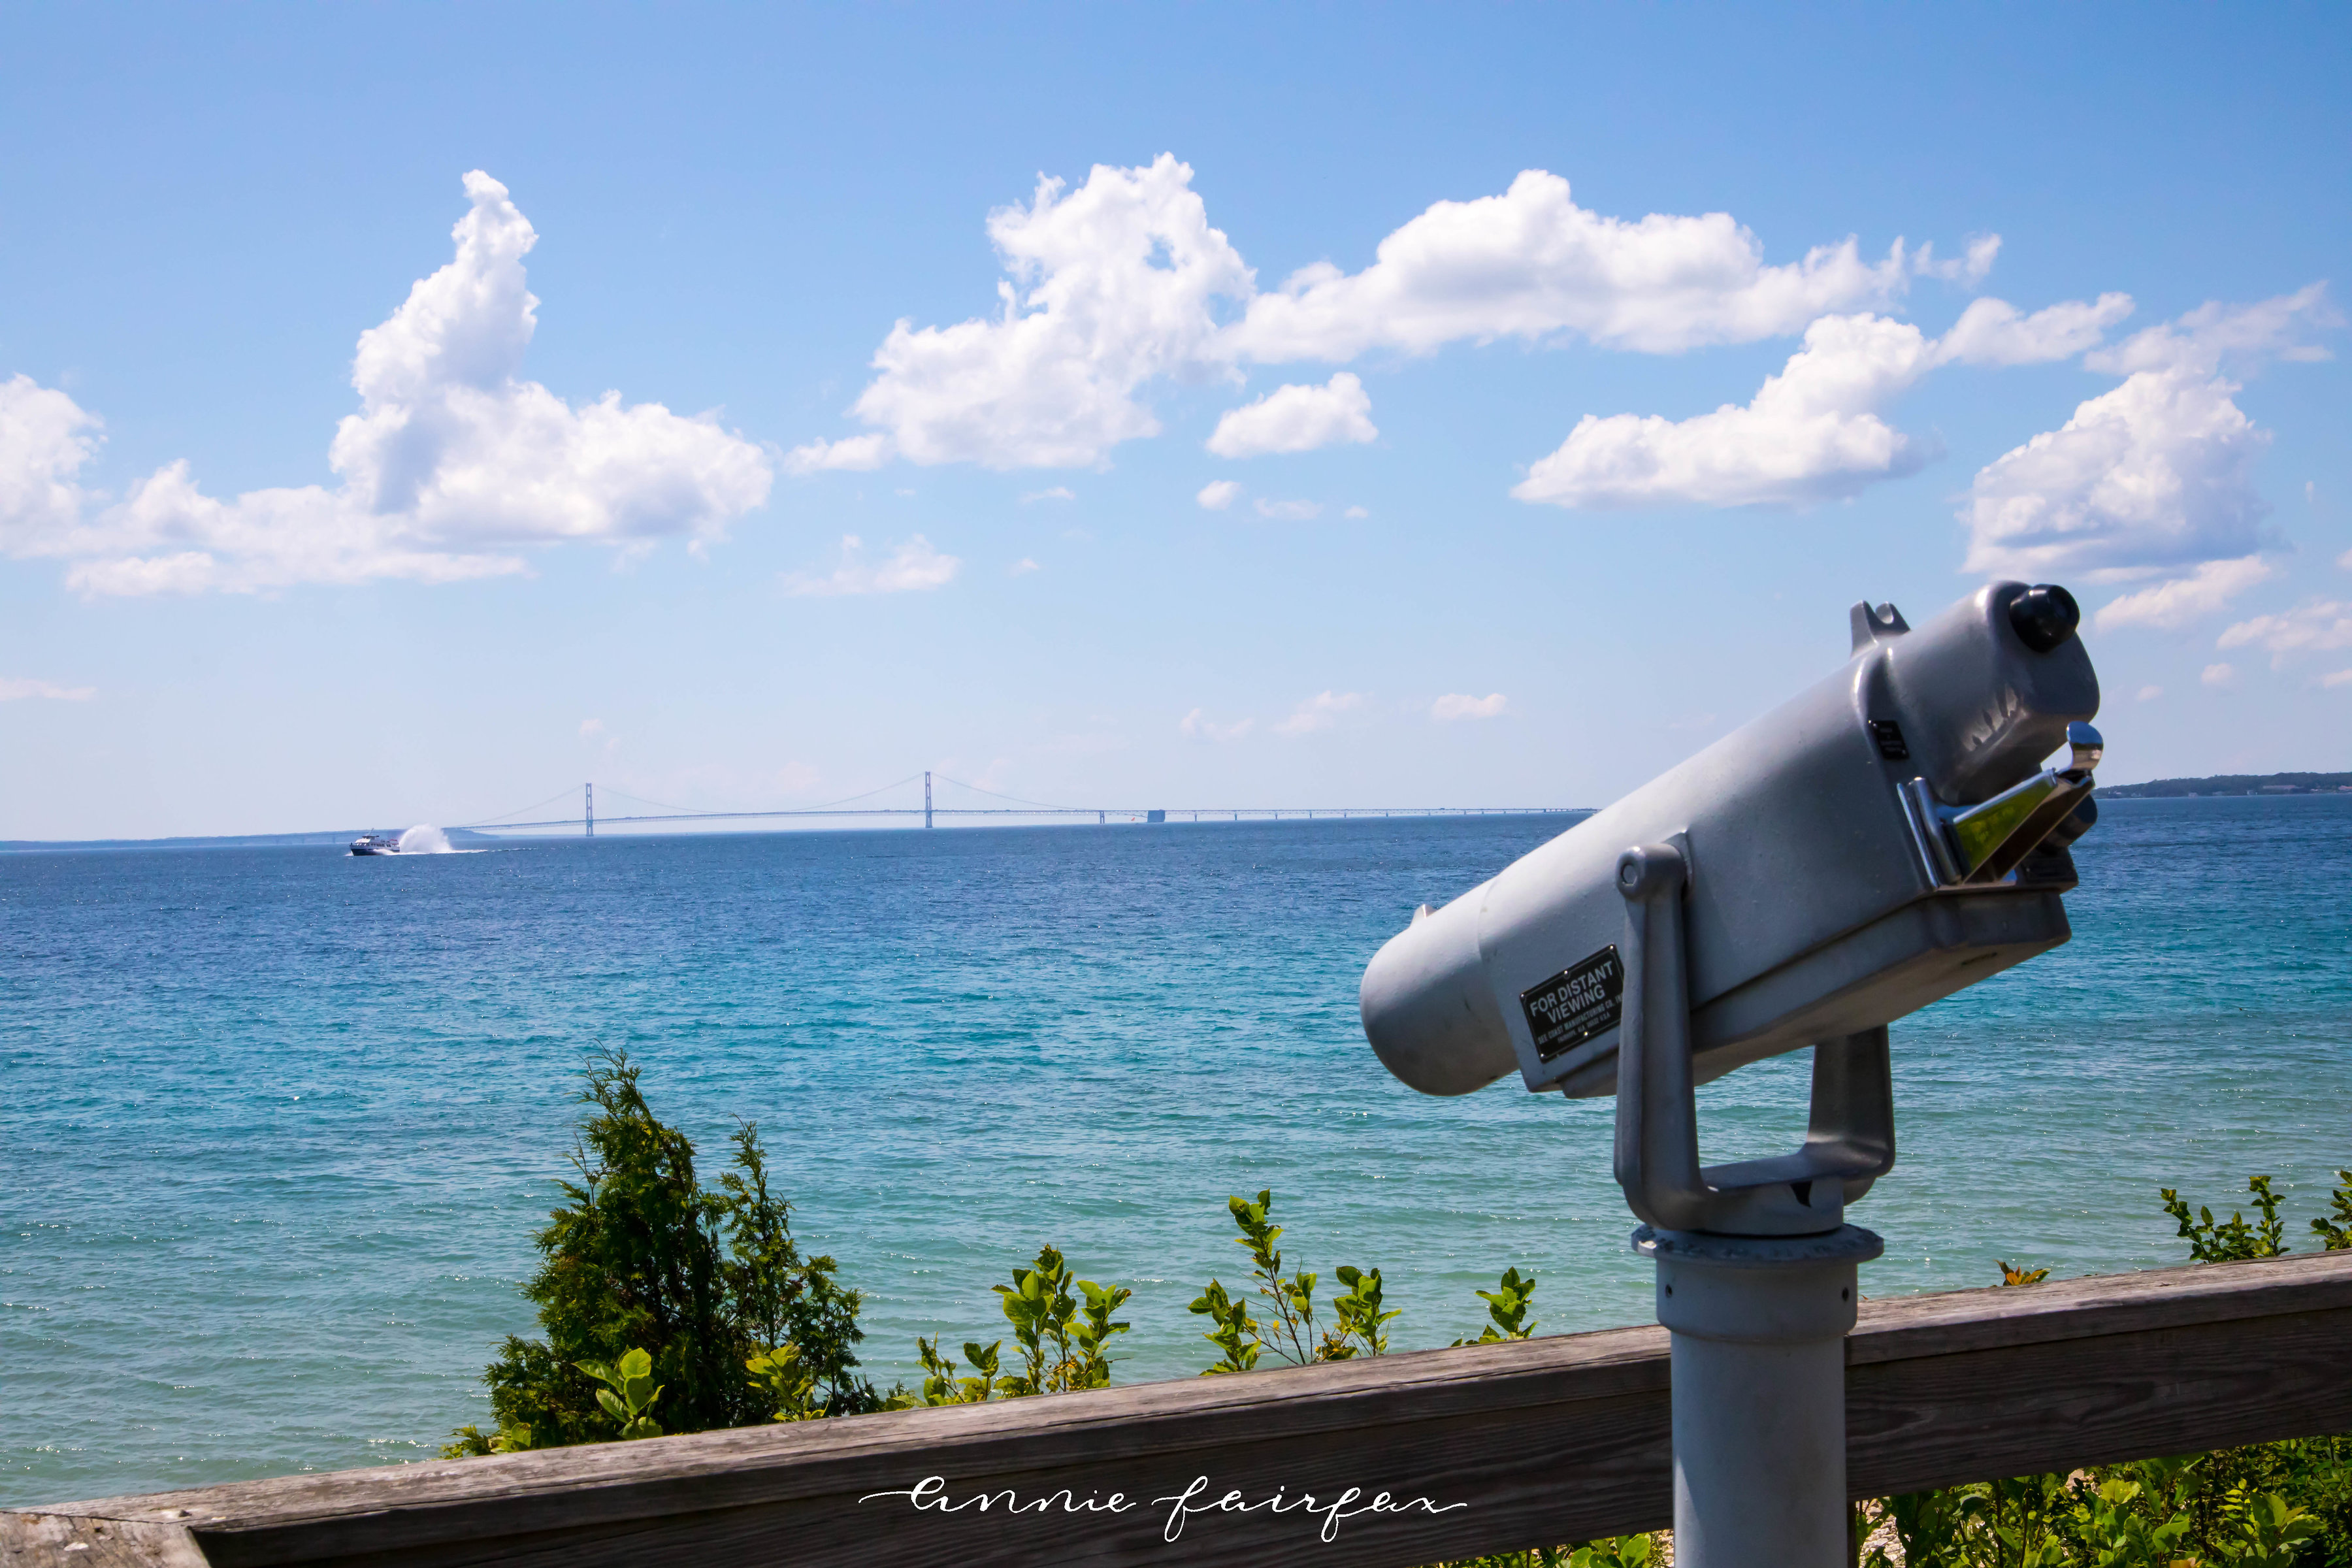 View of the Mackinac Bridge on Mackinac Island, MI